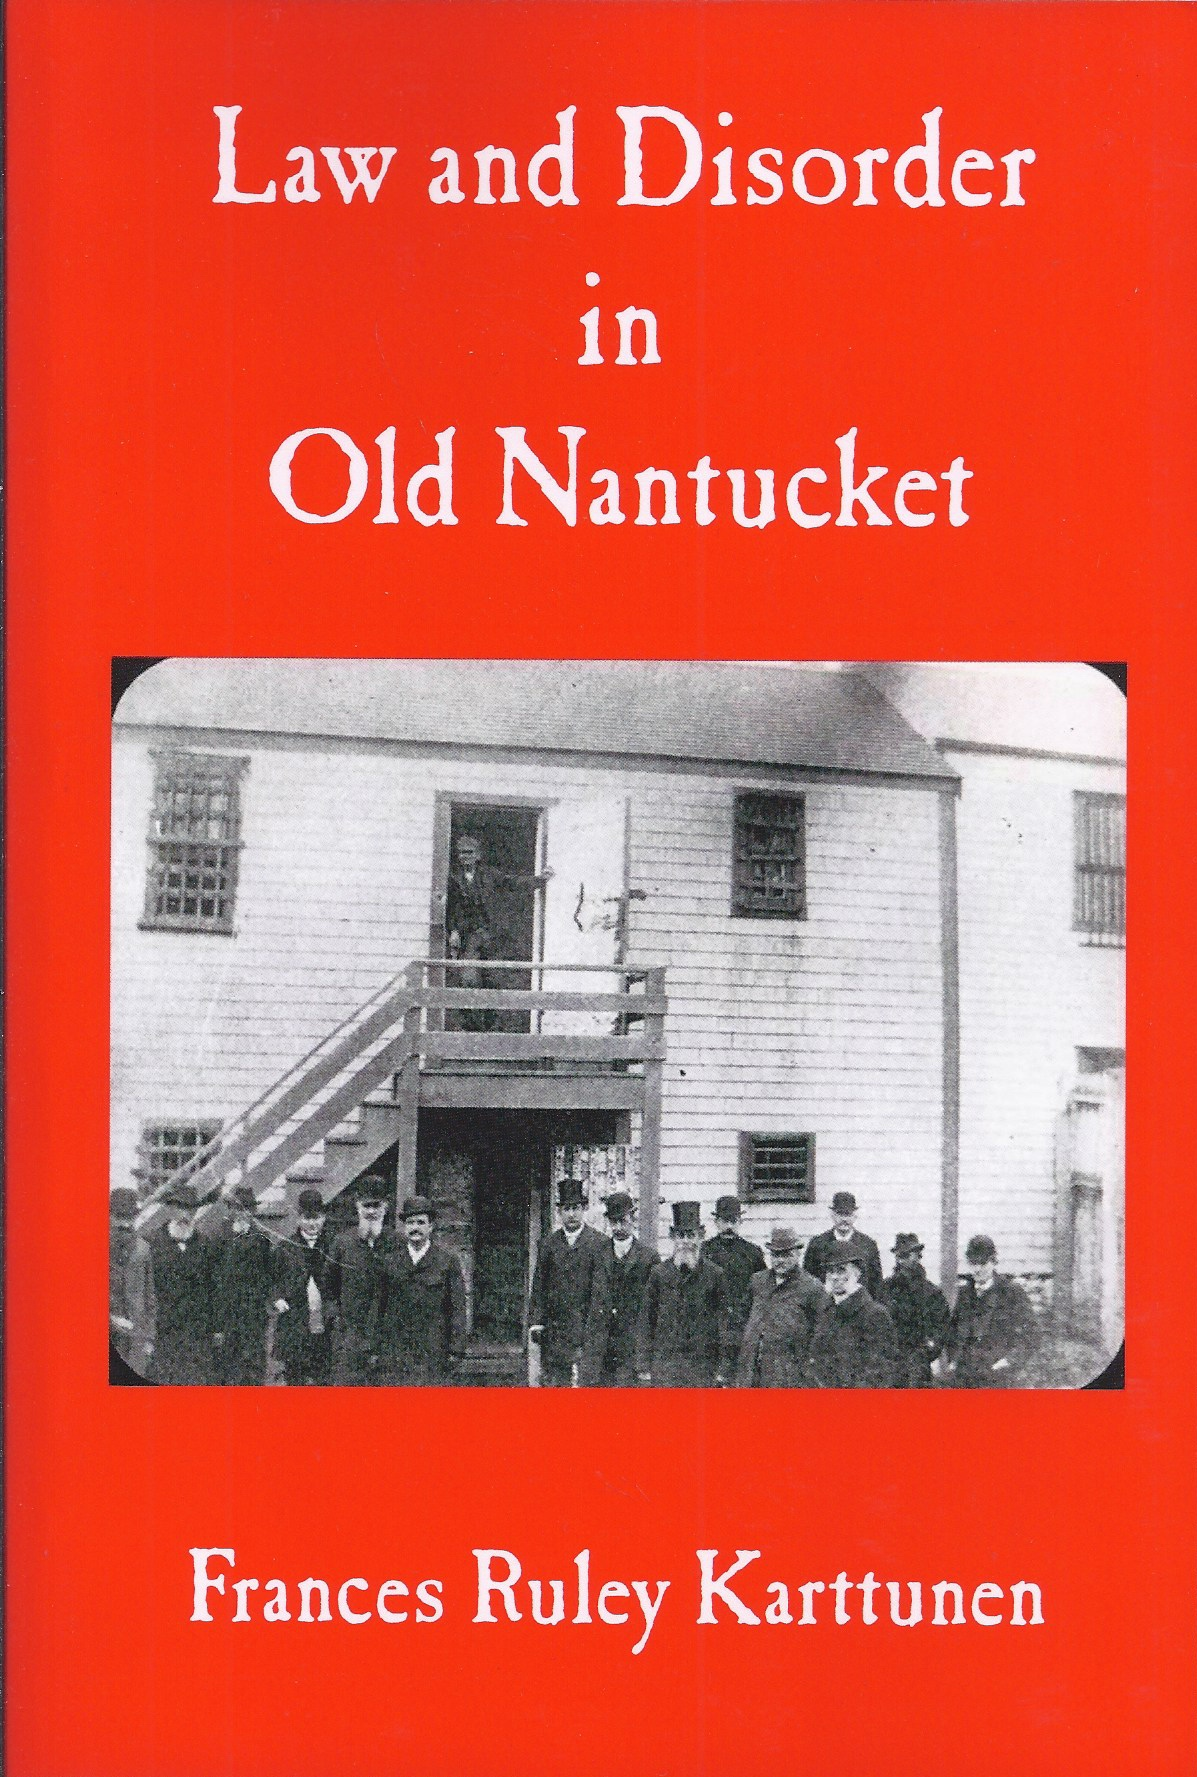 Image for Law and Disorder in Old Nantucket